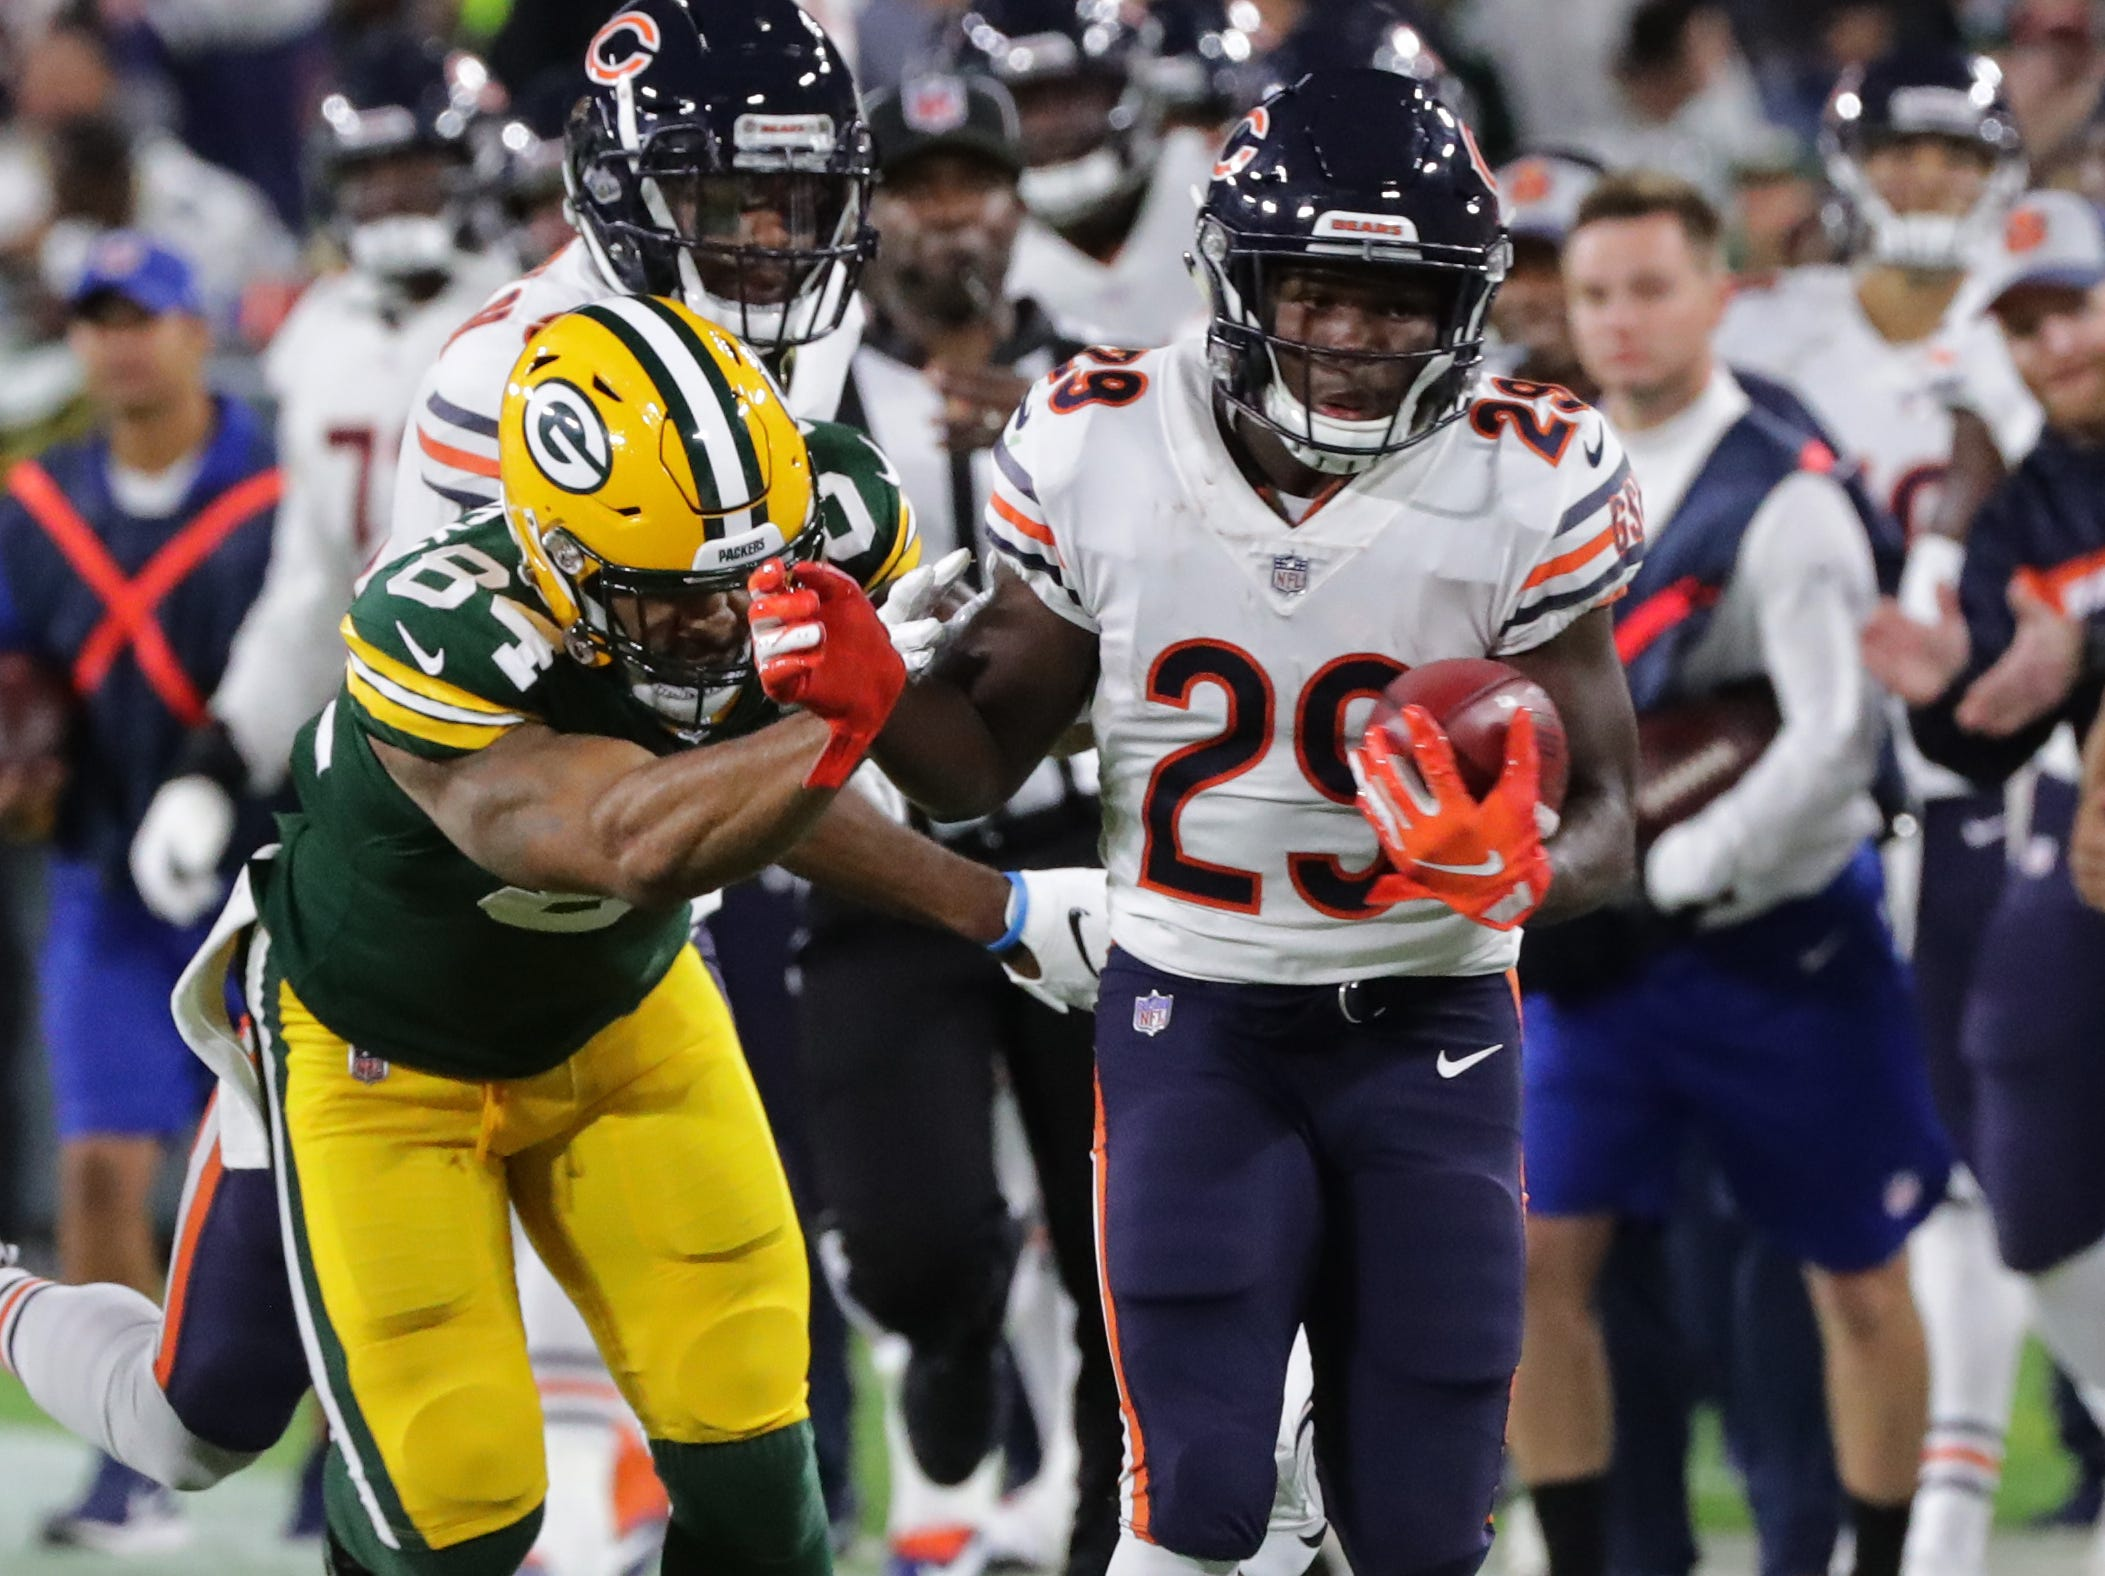 Chicago Bears running back Tarik Cohen (29) returns a punt for 42 yard during the second quarter of their game against the Green Bay Packers Sunday, September 9, 2018 at Lambeau Field in Green Bay, Wis.